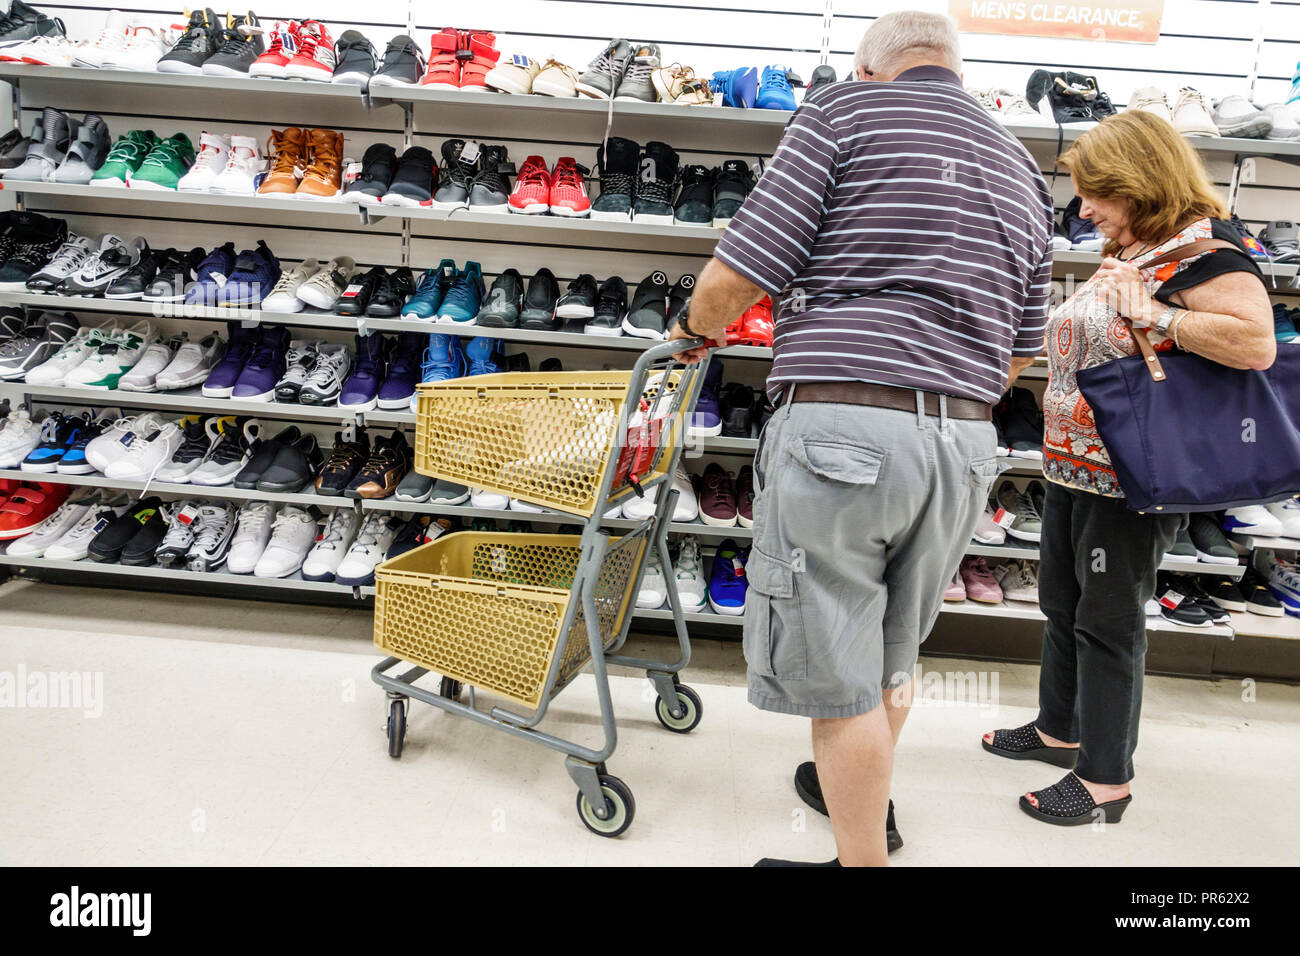 Miami Florida Kendall The Palms at Town & Country Mall Marshalls discount department store inside shopping shoes men's athletic man woman couple looki - Stock Image